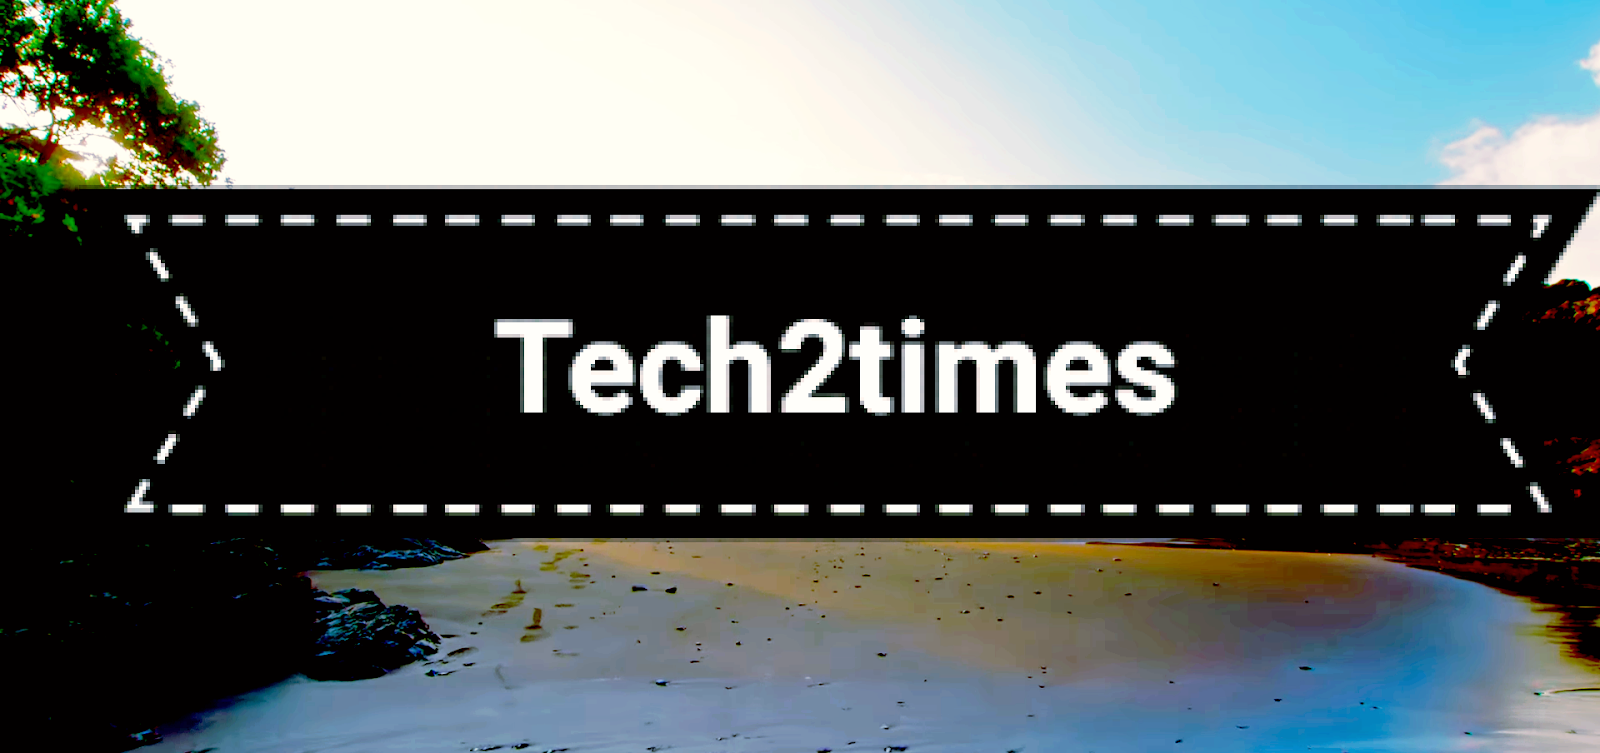 Tech2times - the letest gadget review and tech information